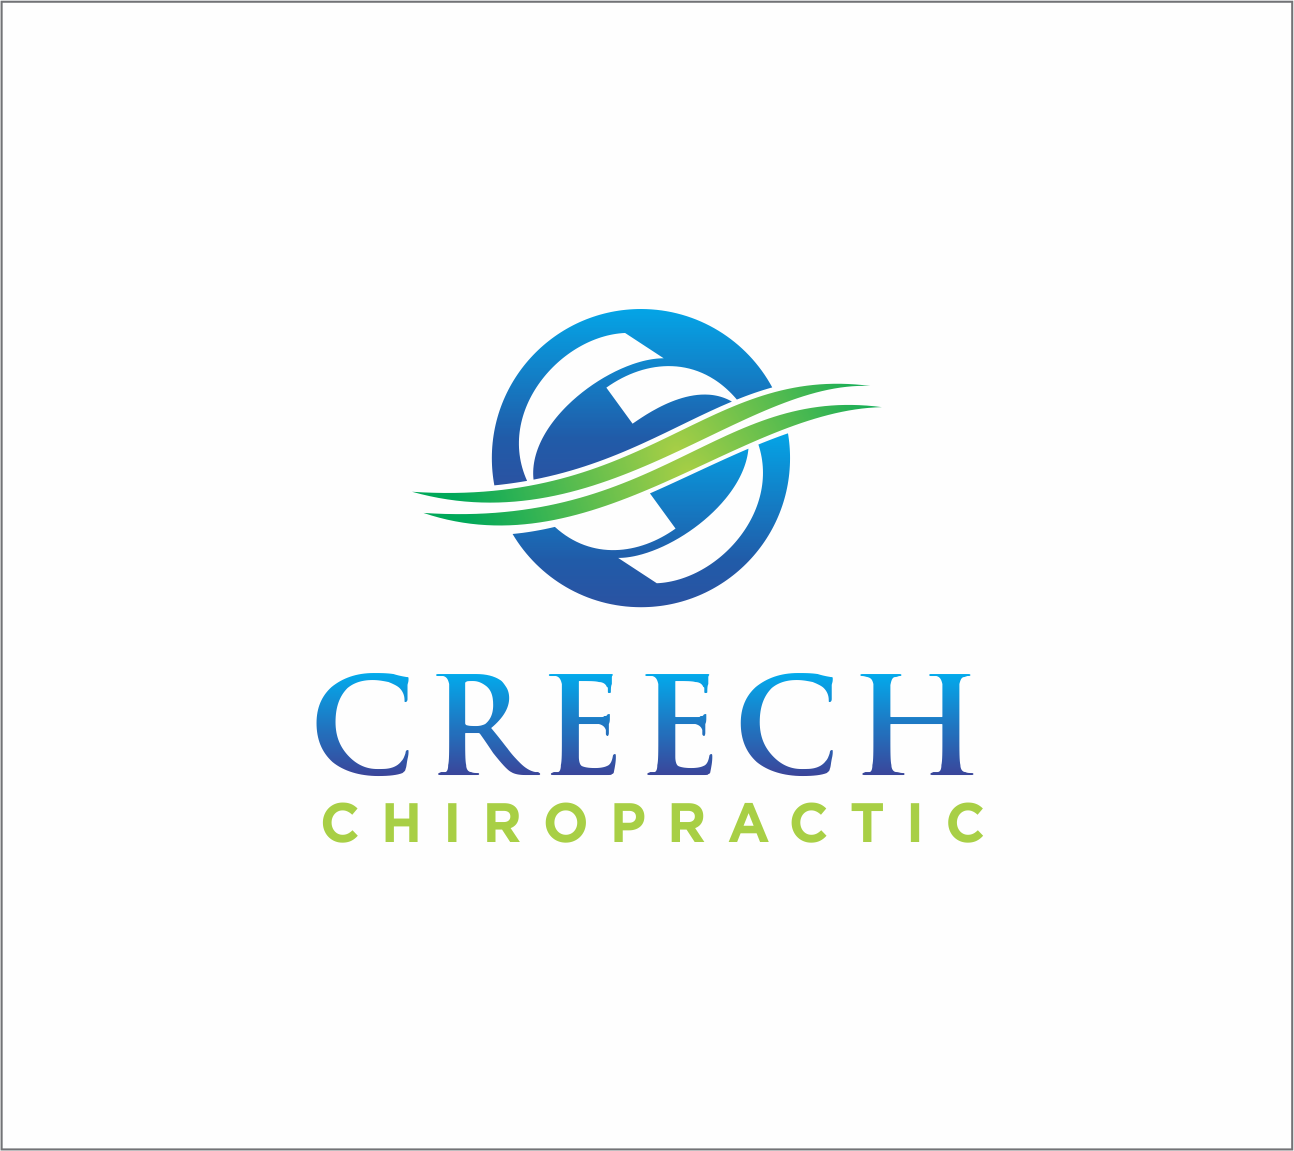 Logo Design by Armada Jamaluddin - Entry No. 111 in the Logo Design Contest Imaginative Logo Design for Creech Chiropractic.